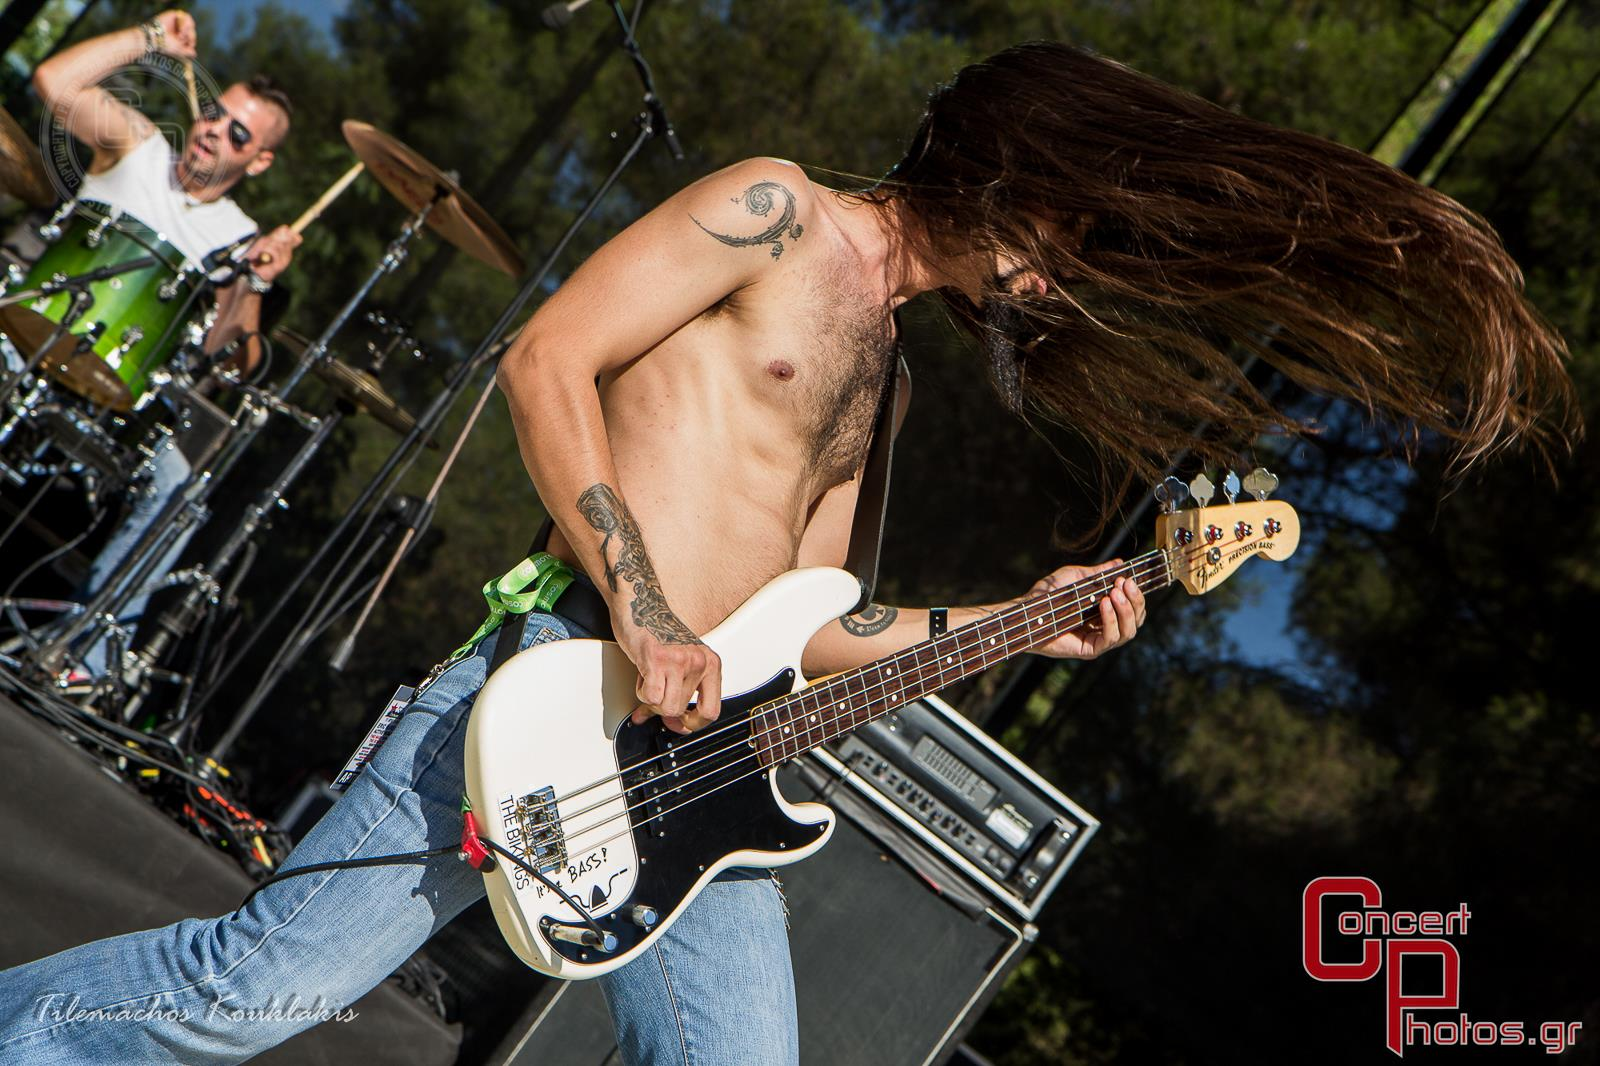 Rockwave 2014-Rockwave 2014 - Day 1 photographer:  - Rockwave-2014-3